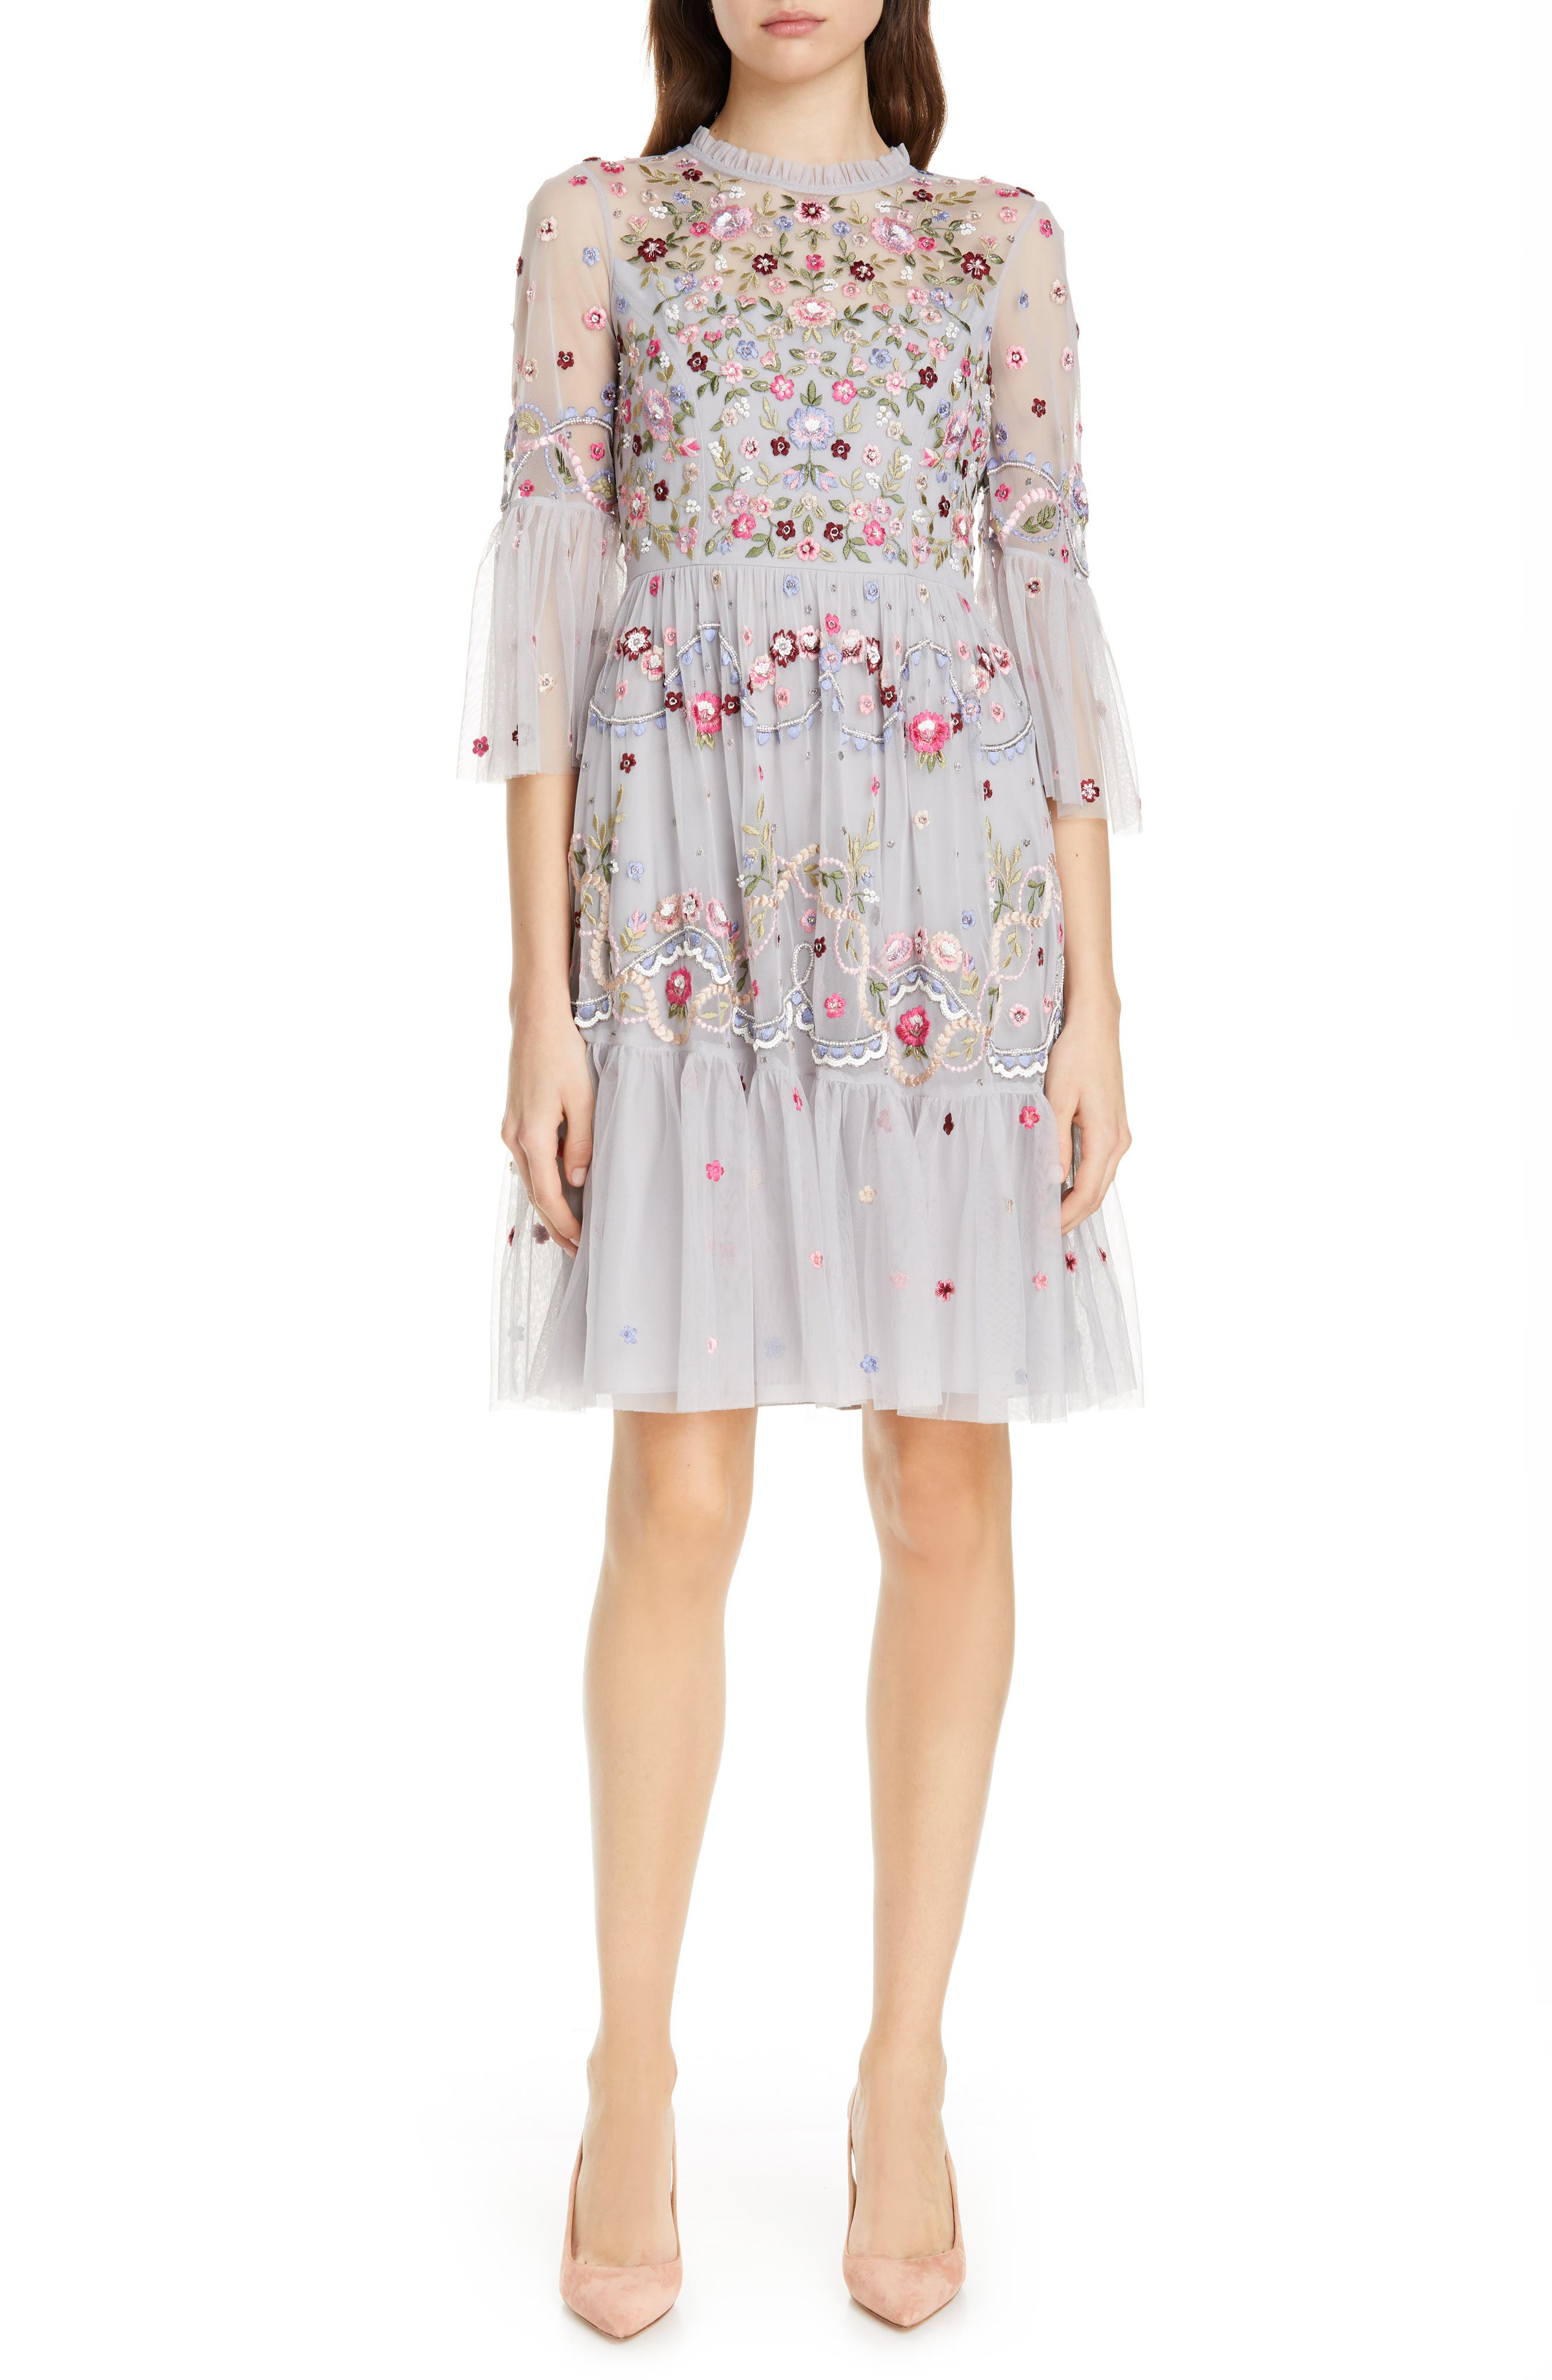 NEEDLE & THREAD Dreamers Embroidered Tulle Dress, Main, color, DUSK BLUE